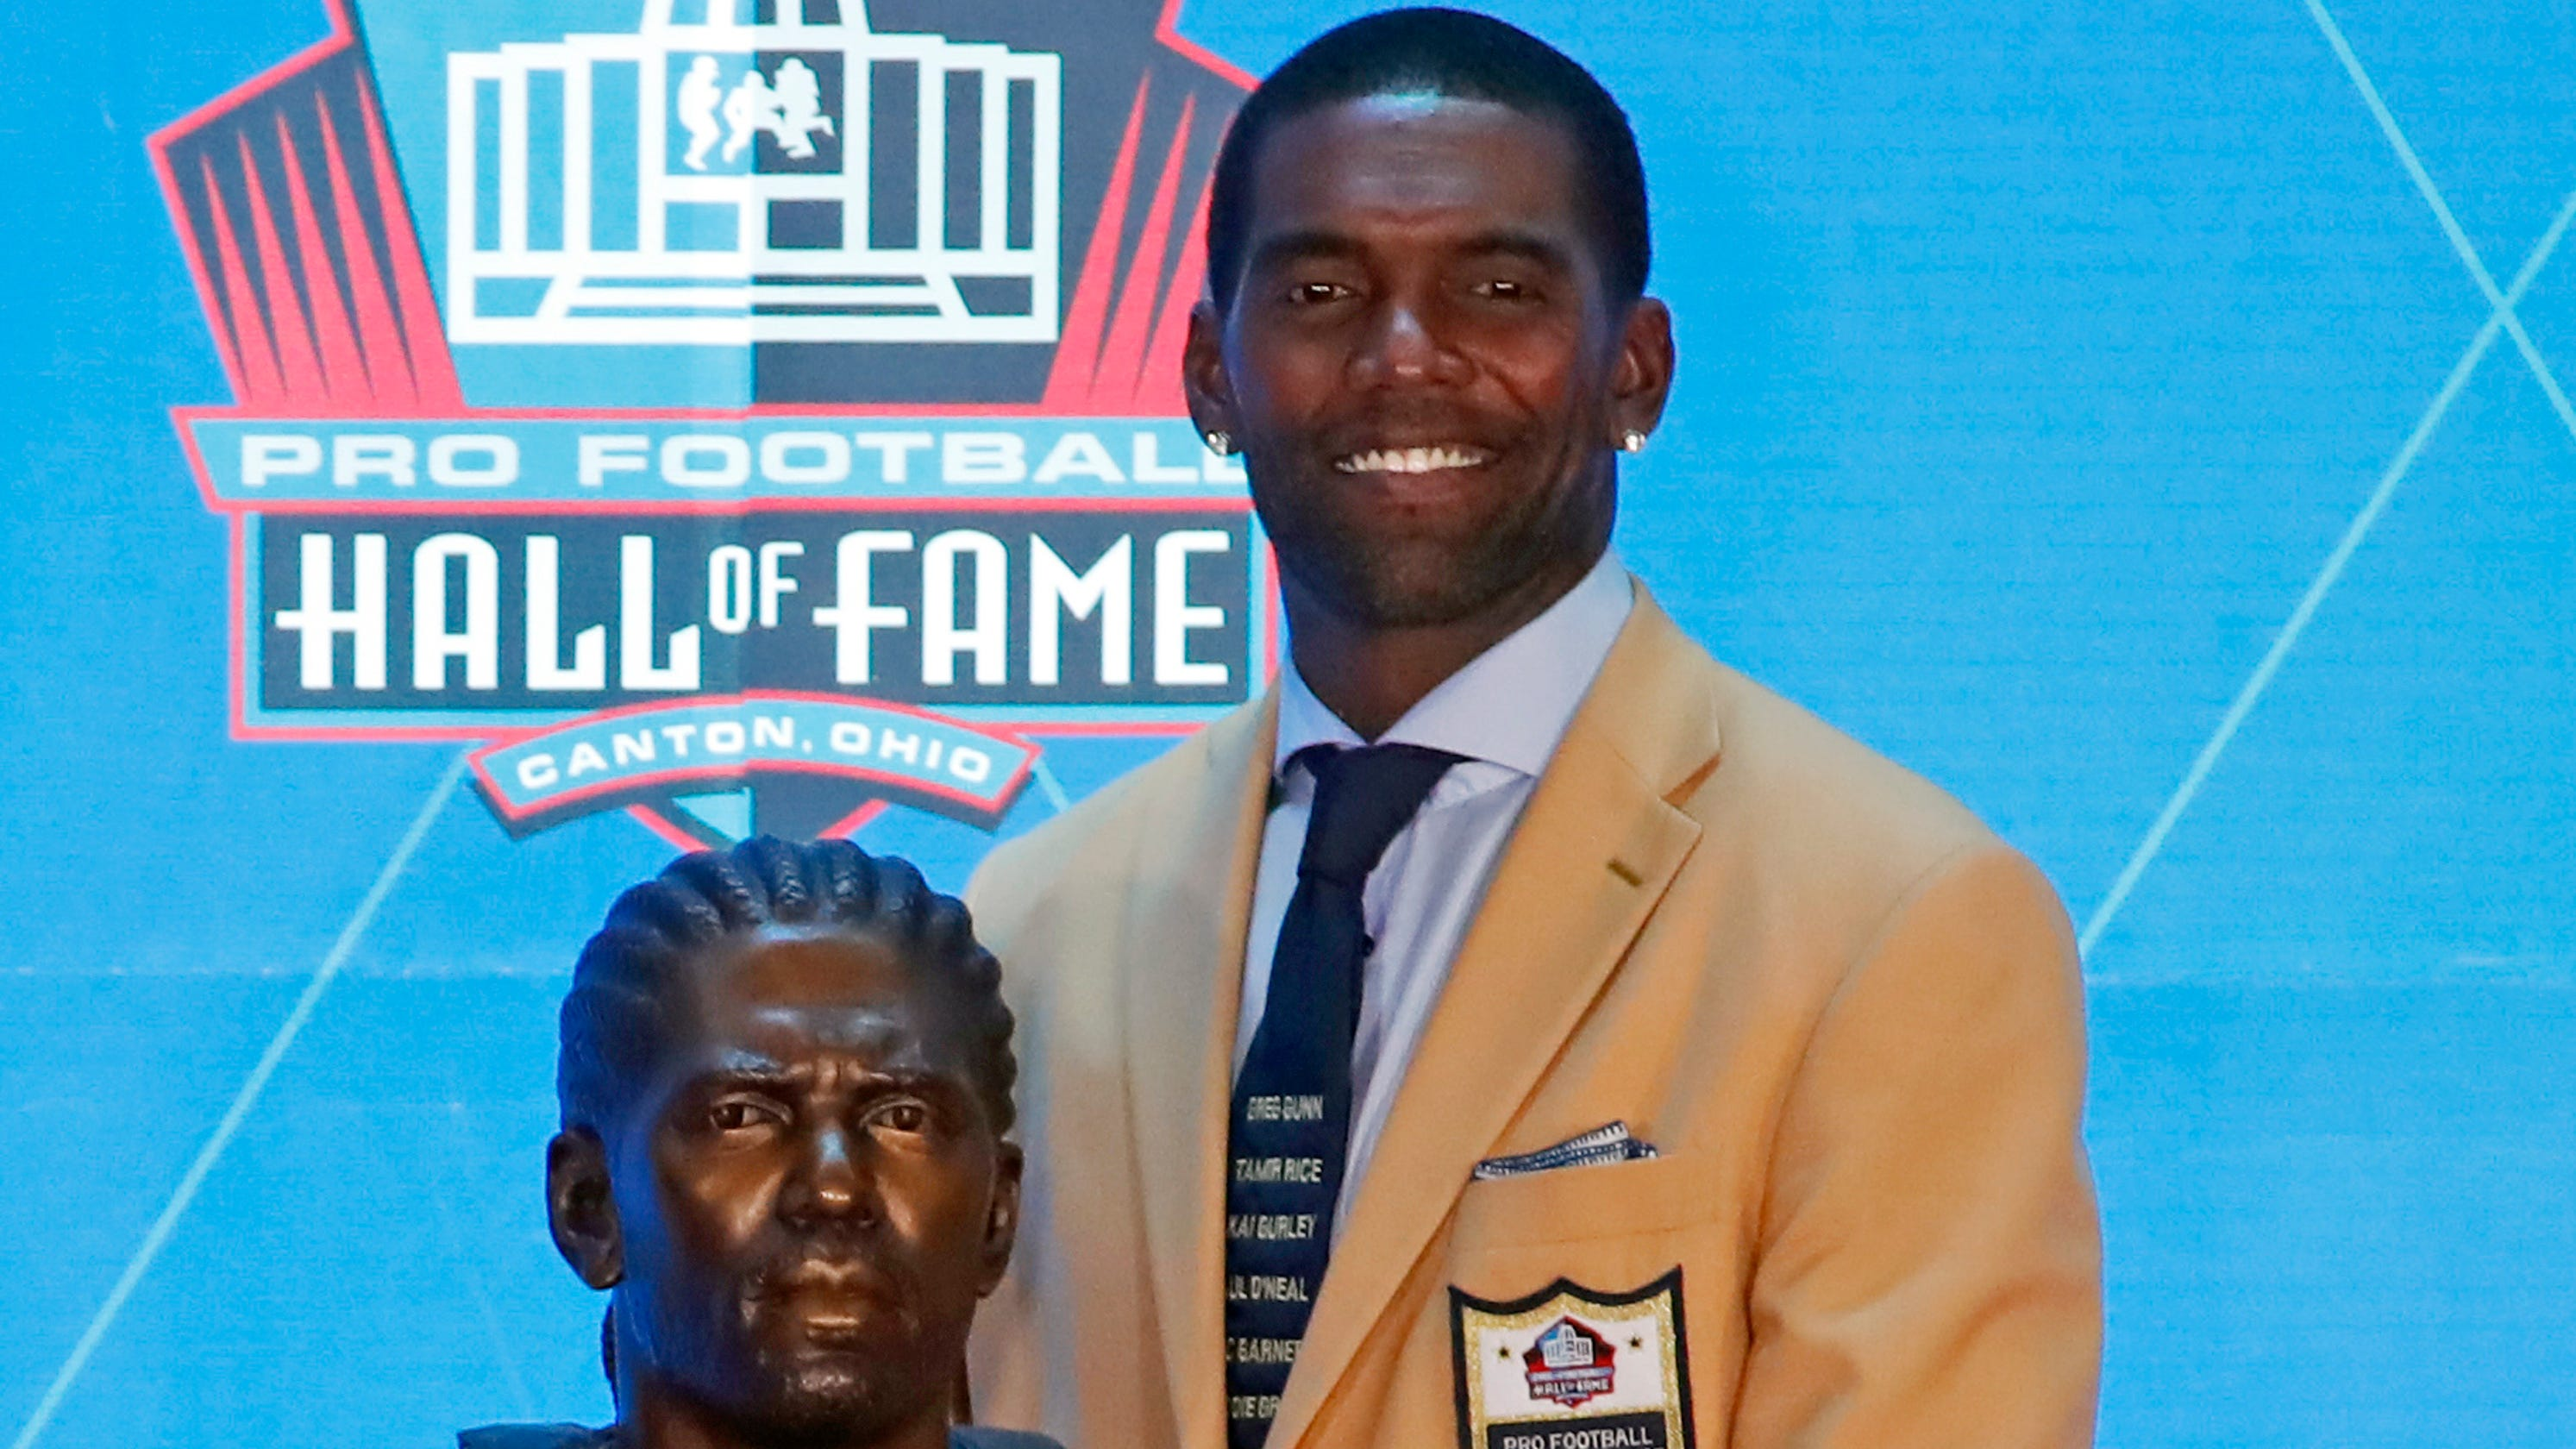 newest 5c657 108f1 Randy Moss describes hate mail after wearing controversial ...